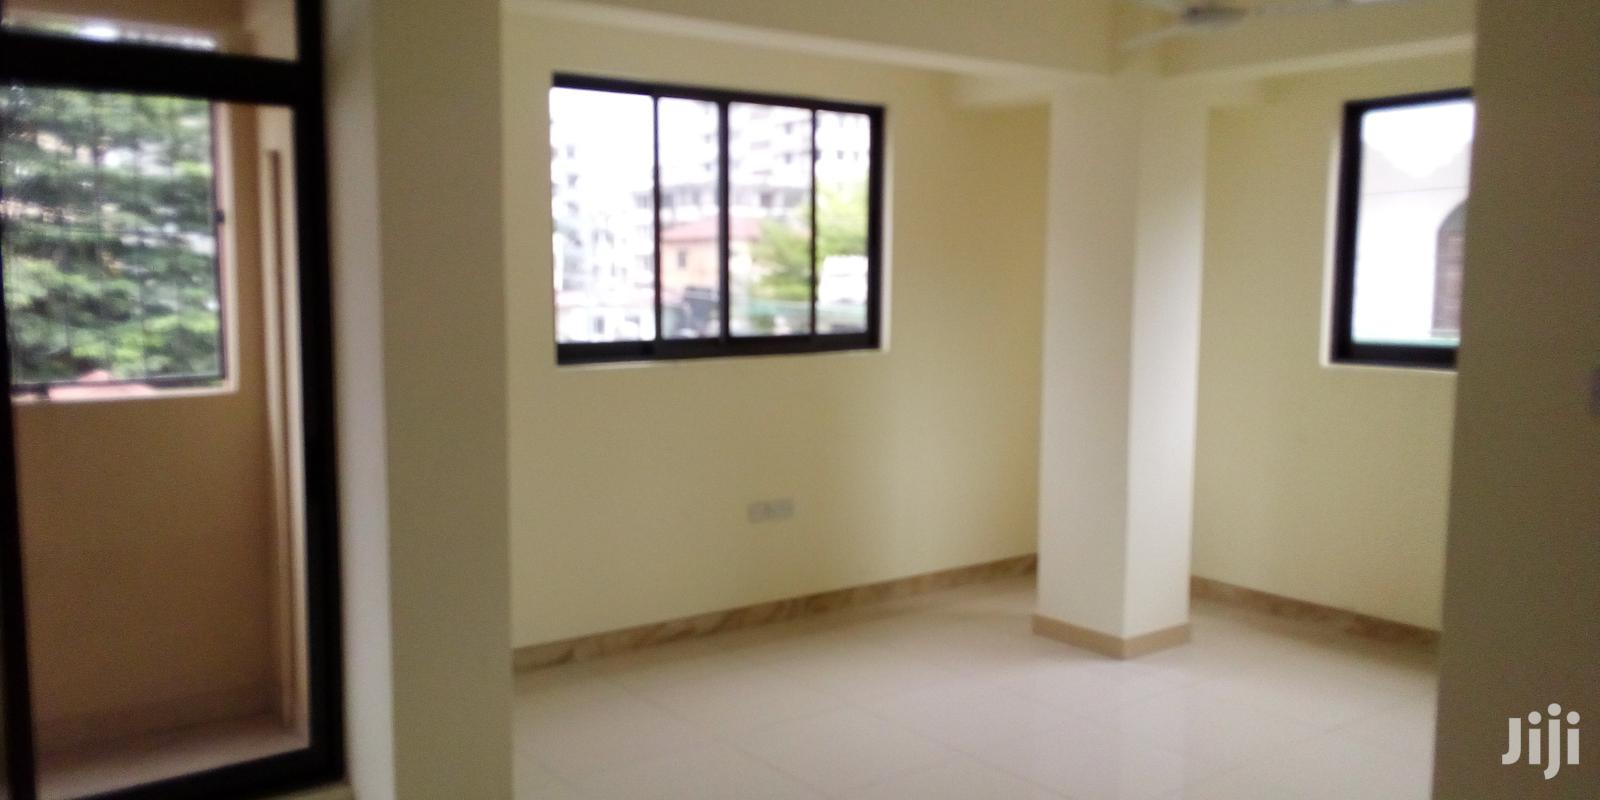 Specious 3 Bedrooms Semi Furnished for Sale at Kariakoo | Houses & Apartments For Sale for sale in Kariakoo, Ilala, Tanzania